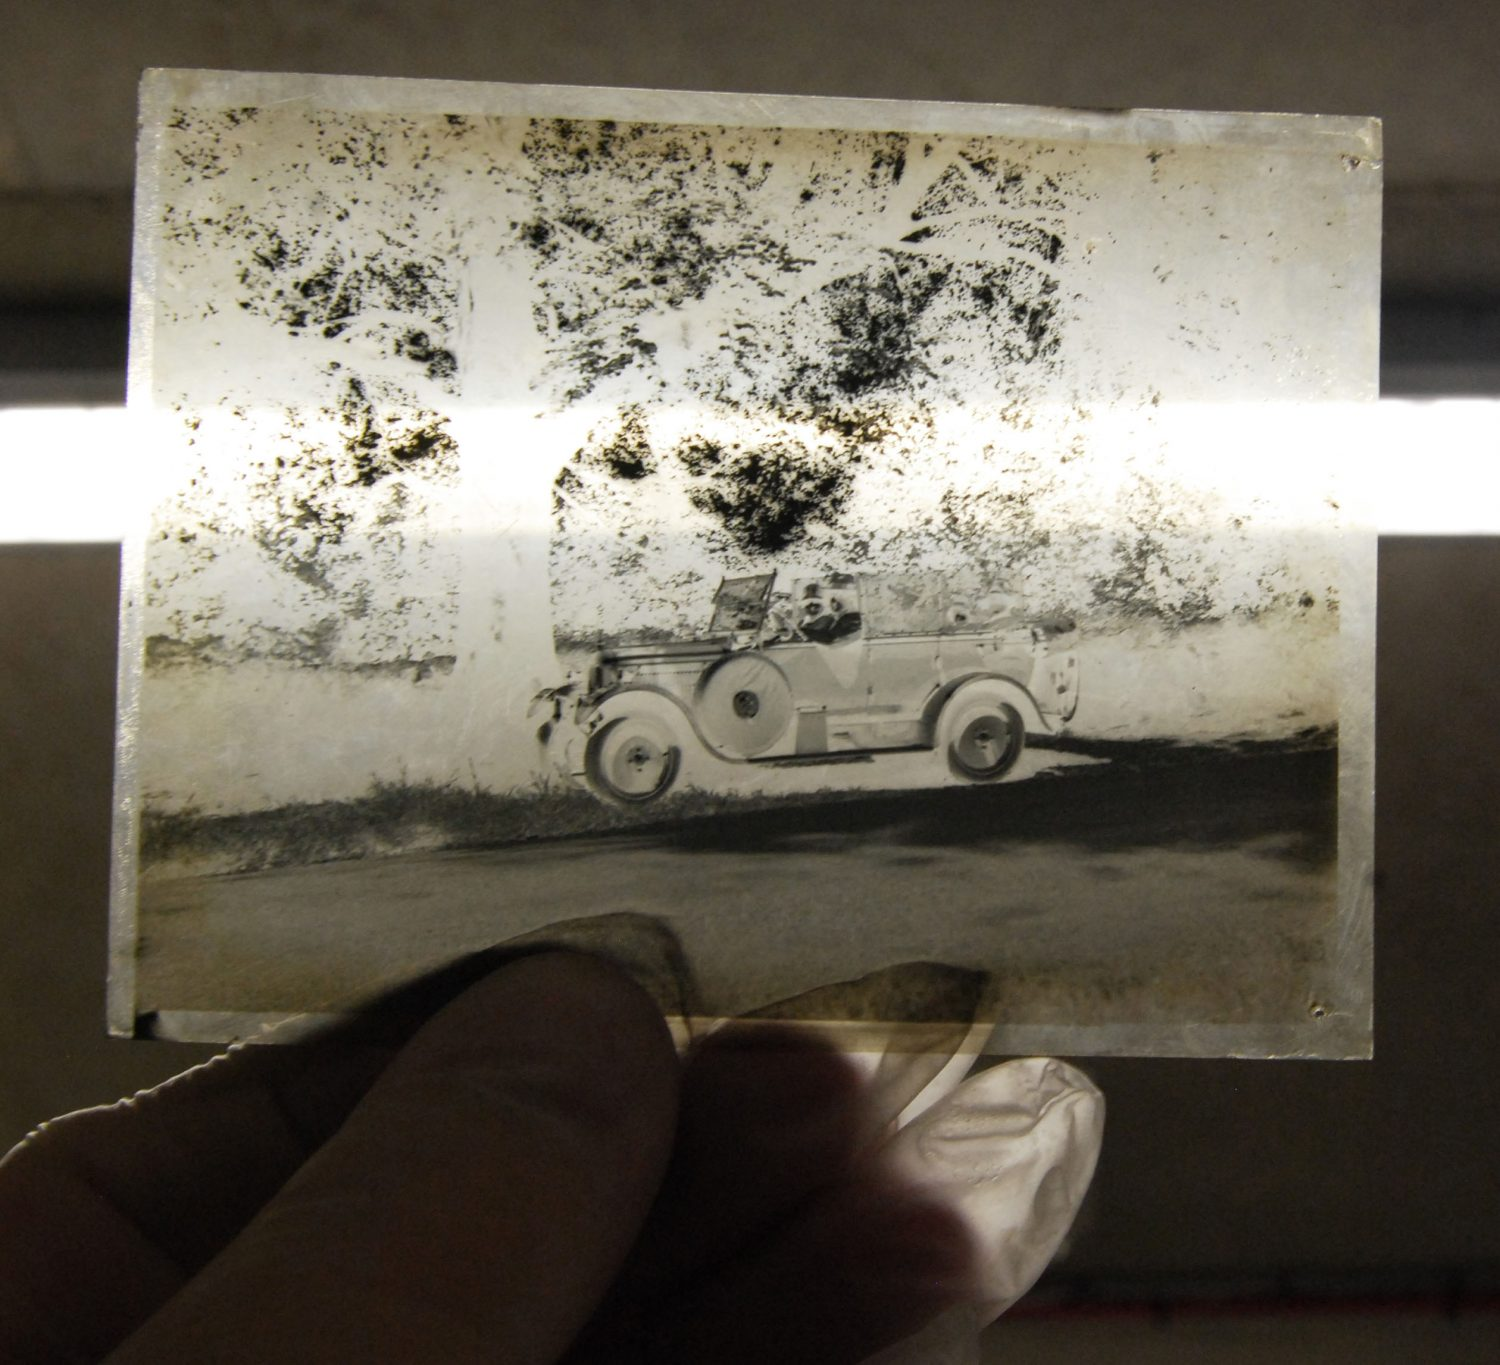 Glass photographic negative of a car